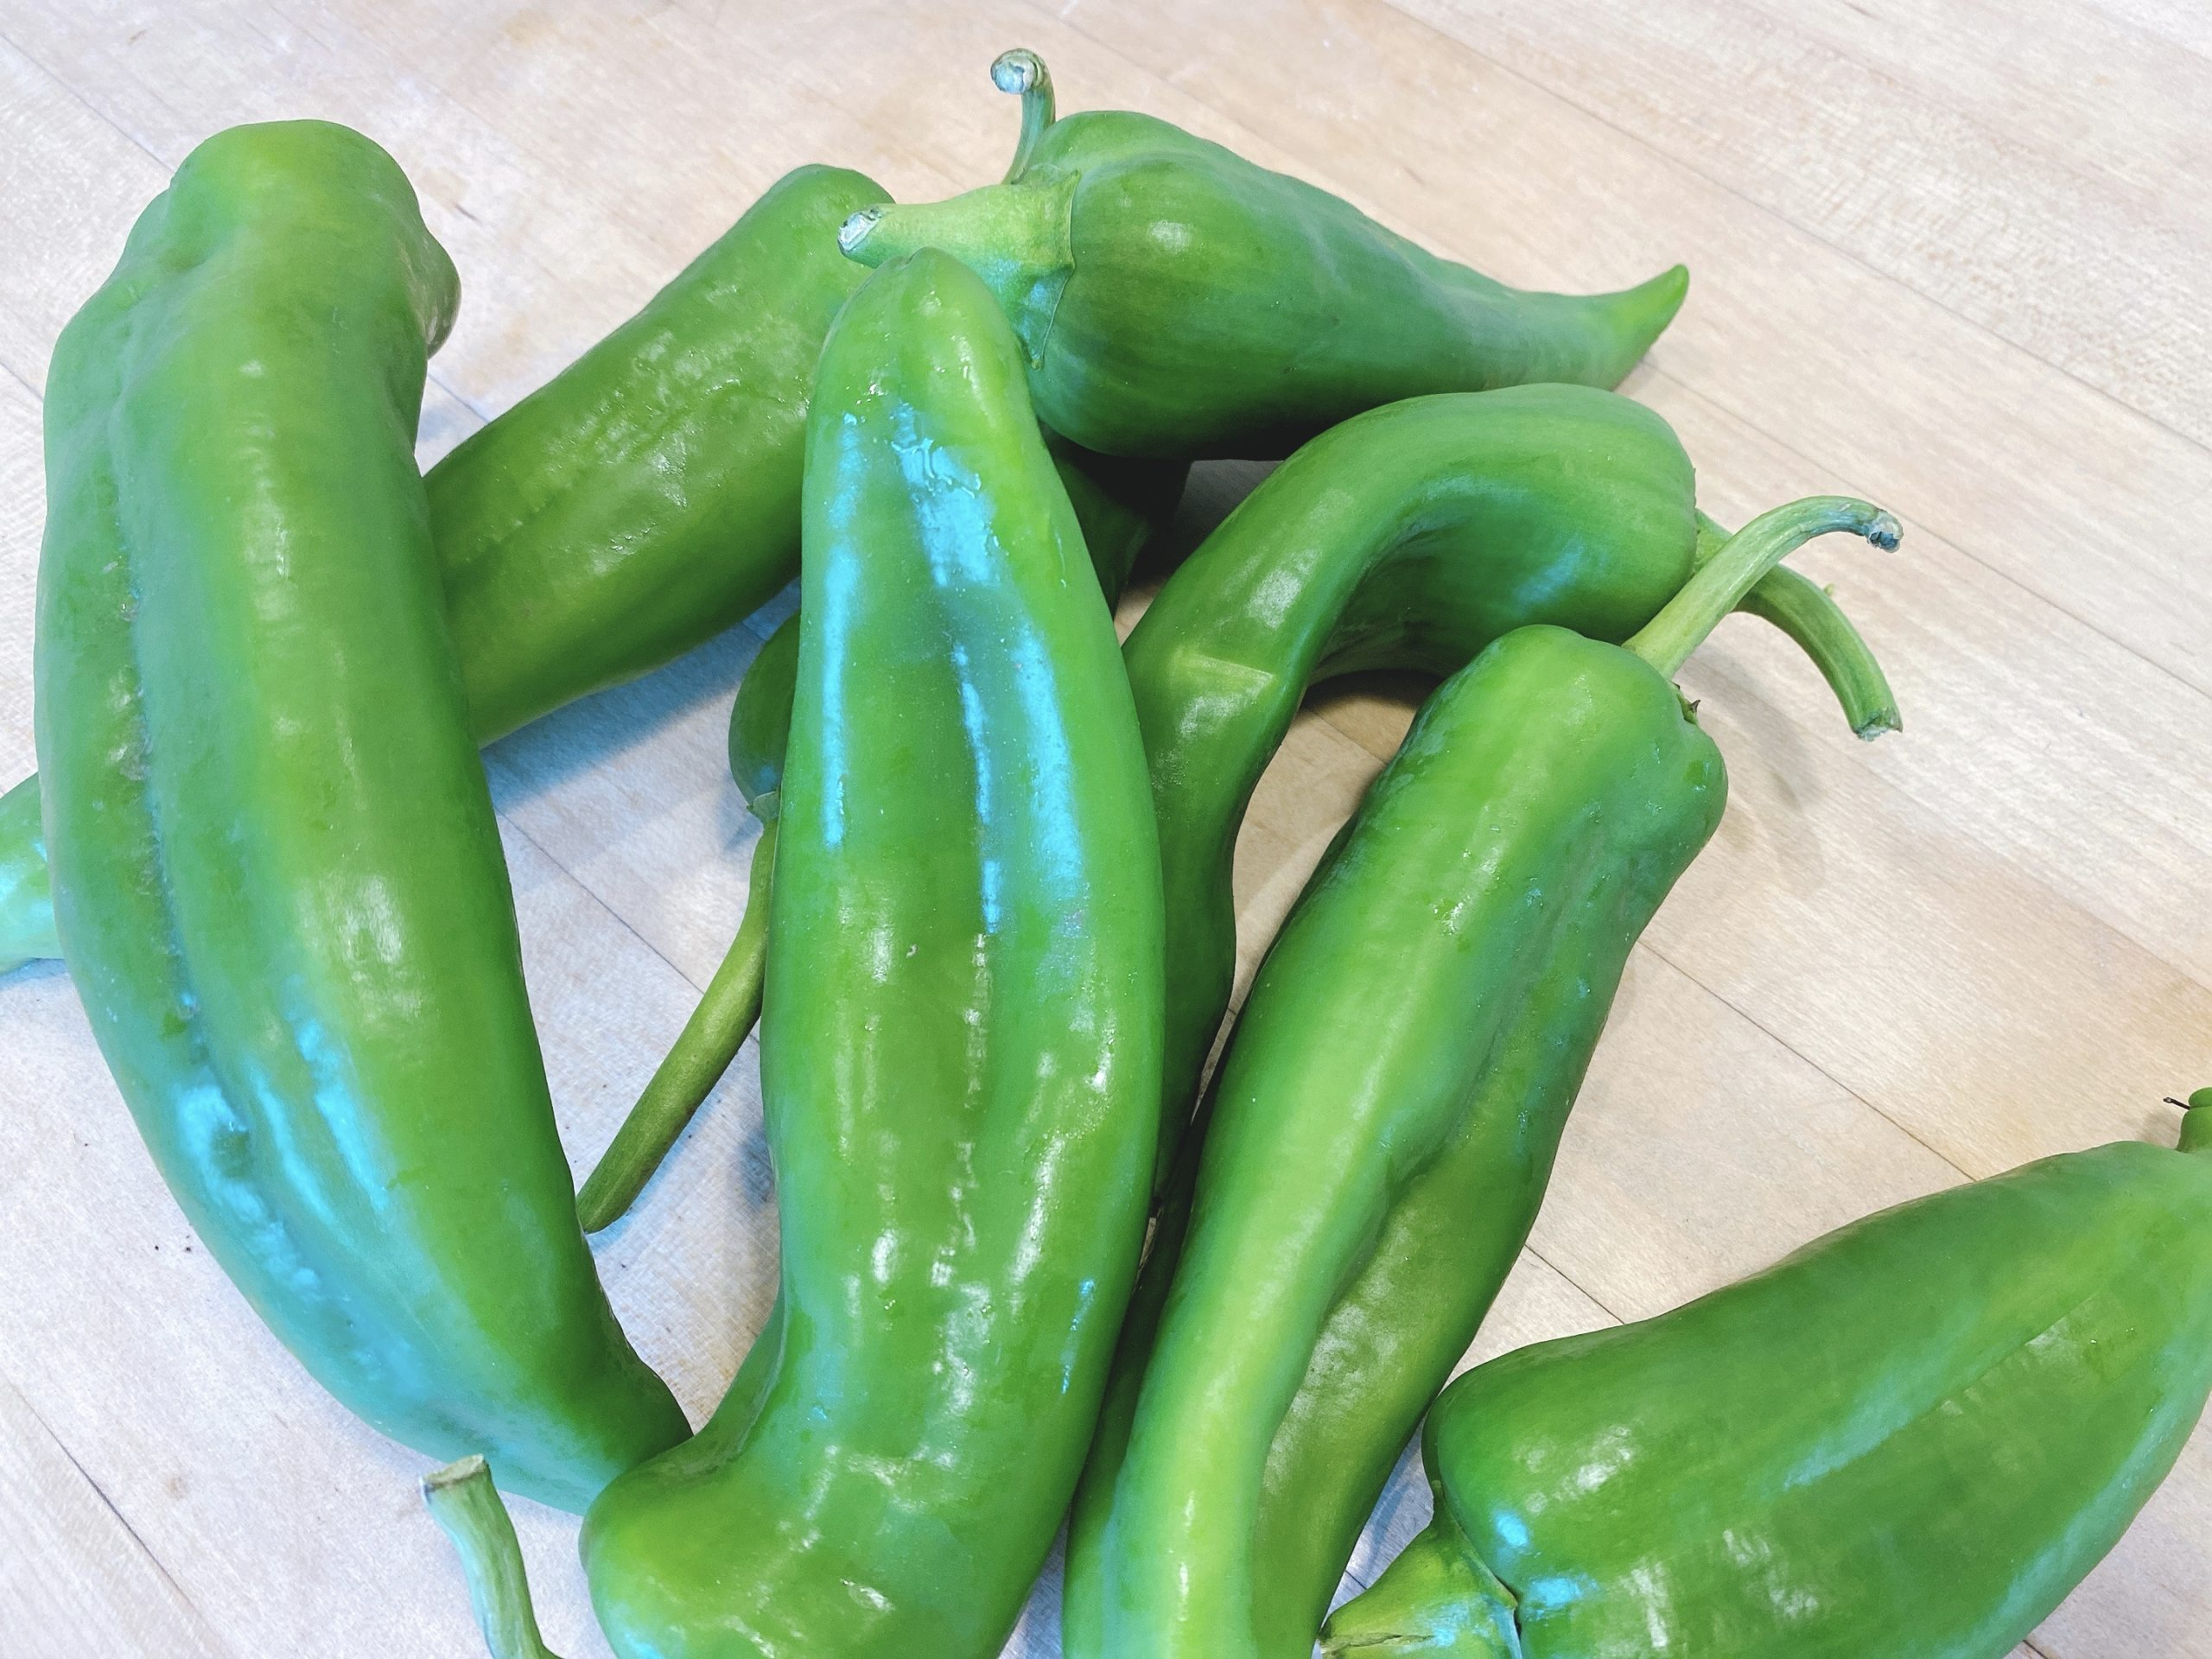 homegrown bright green anaheim chiles from a backyard garden